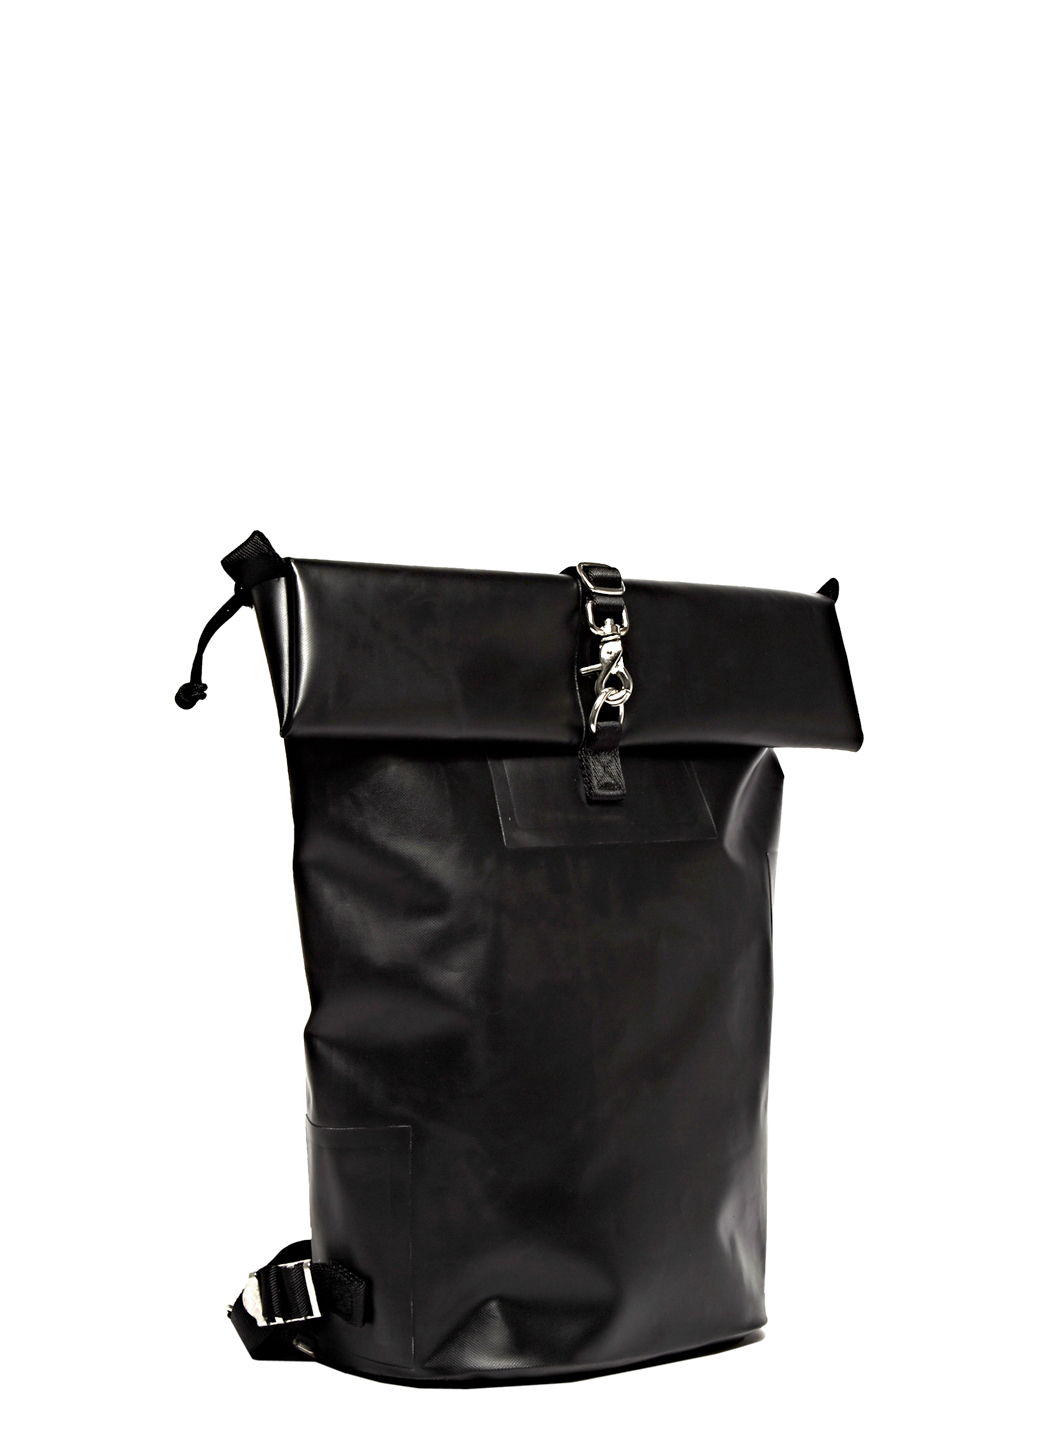 Lyst - Eytys Waterproof Backpack in Black for Men